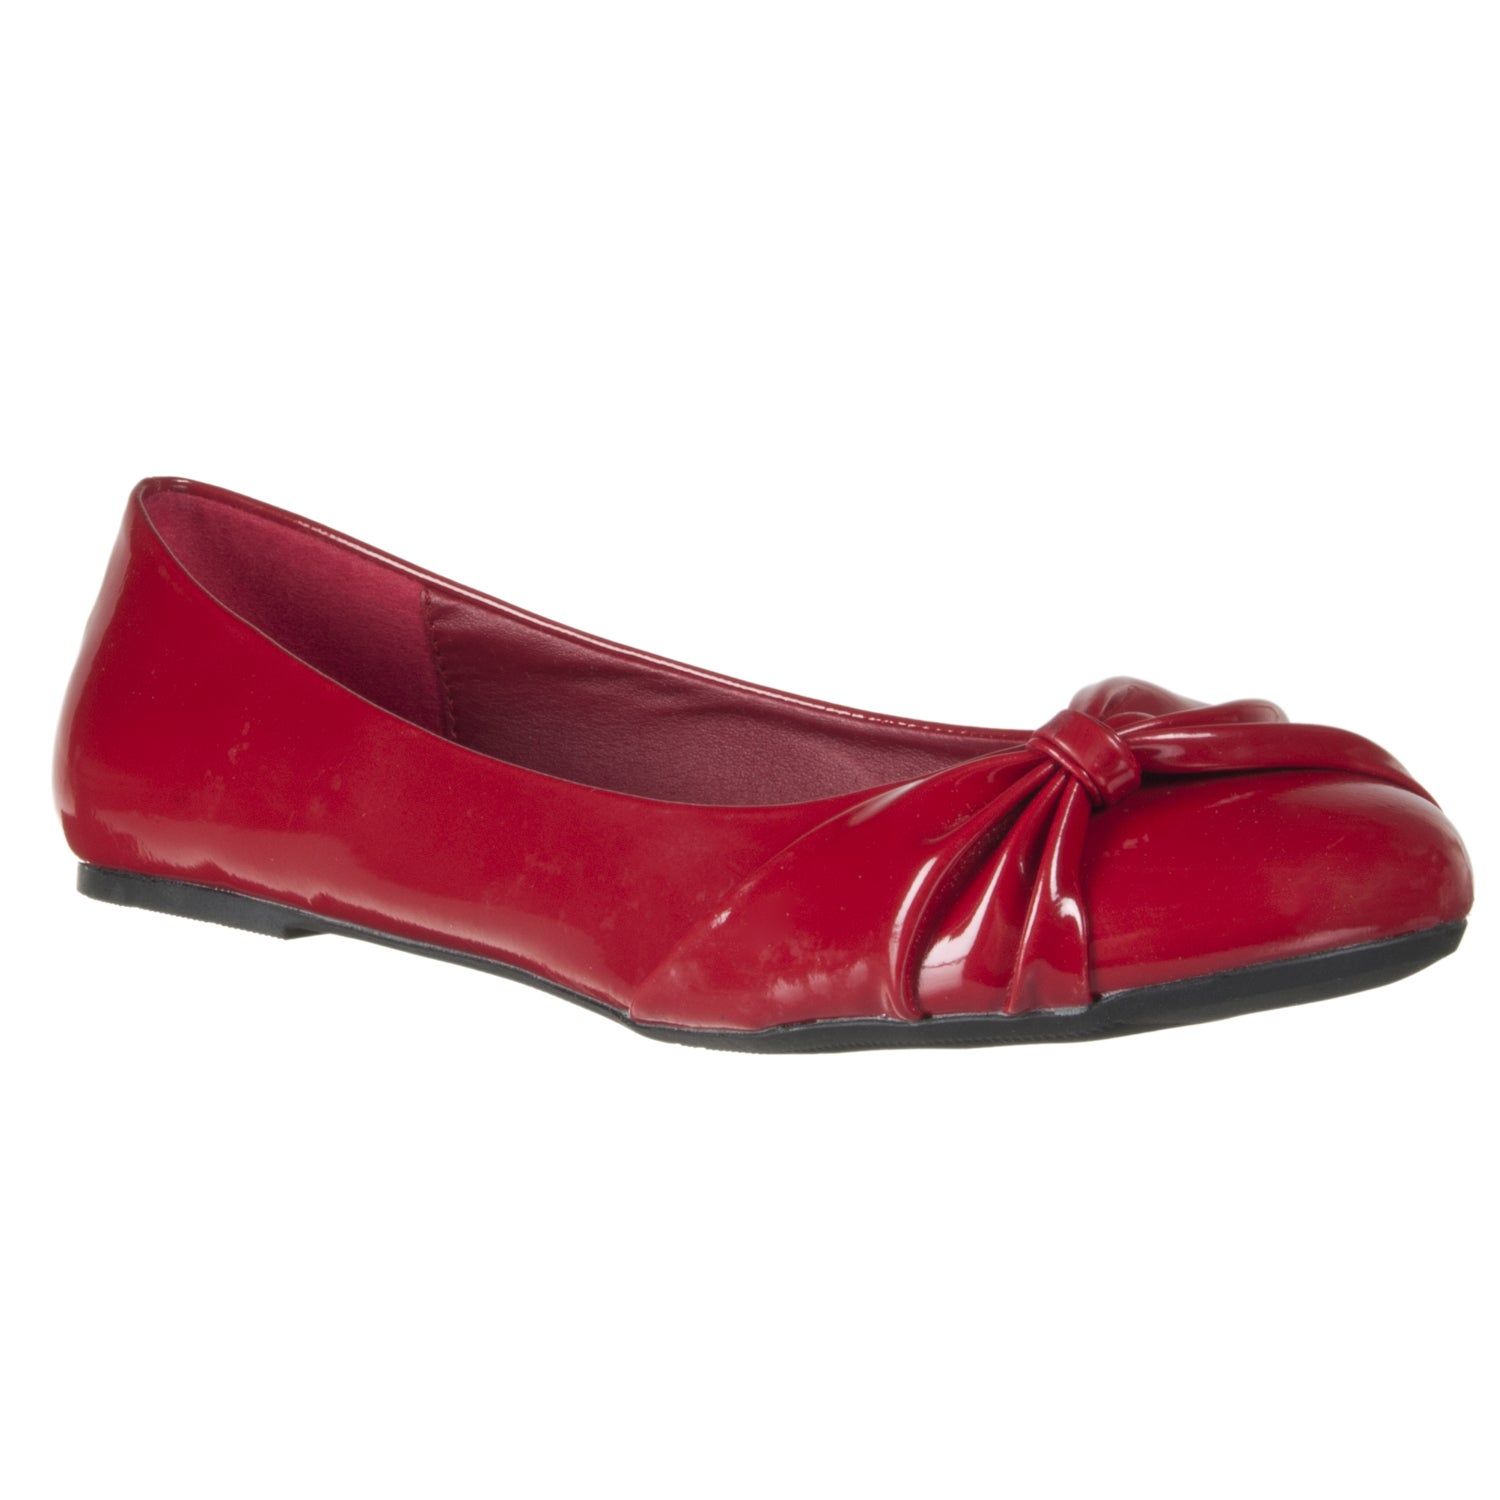 Riverberry Women's Red Bow-detail Ballet Flats